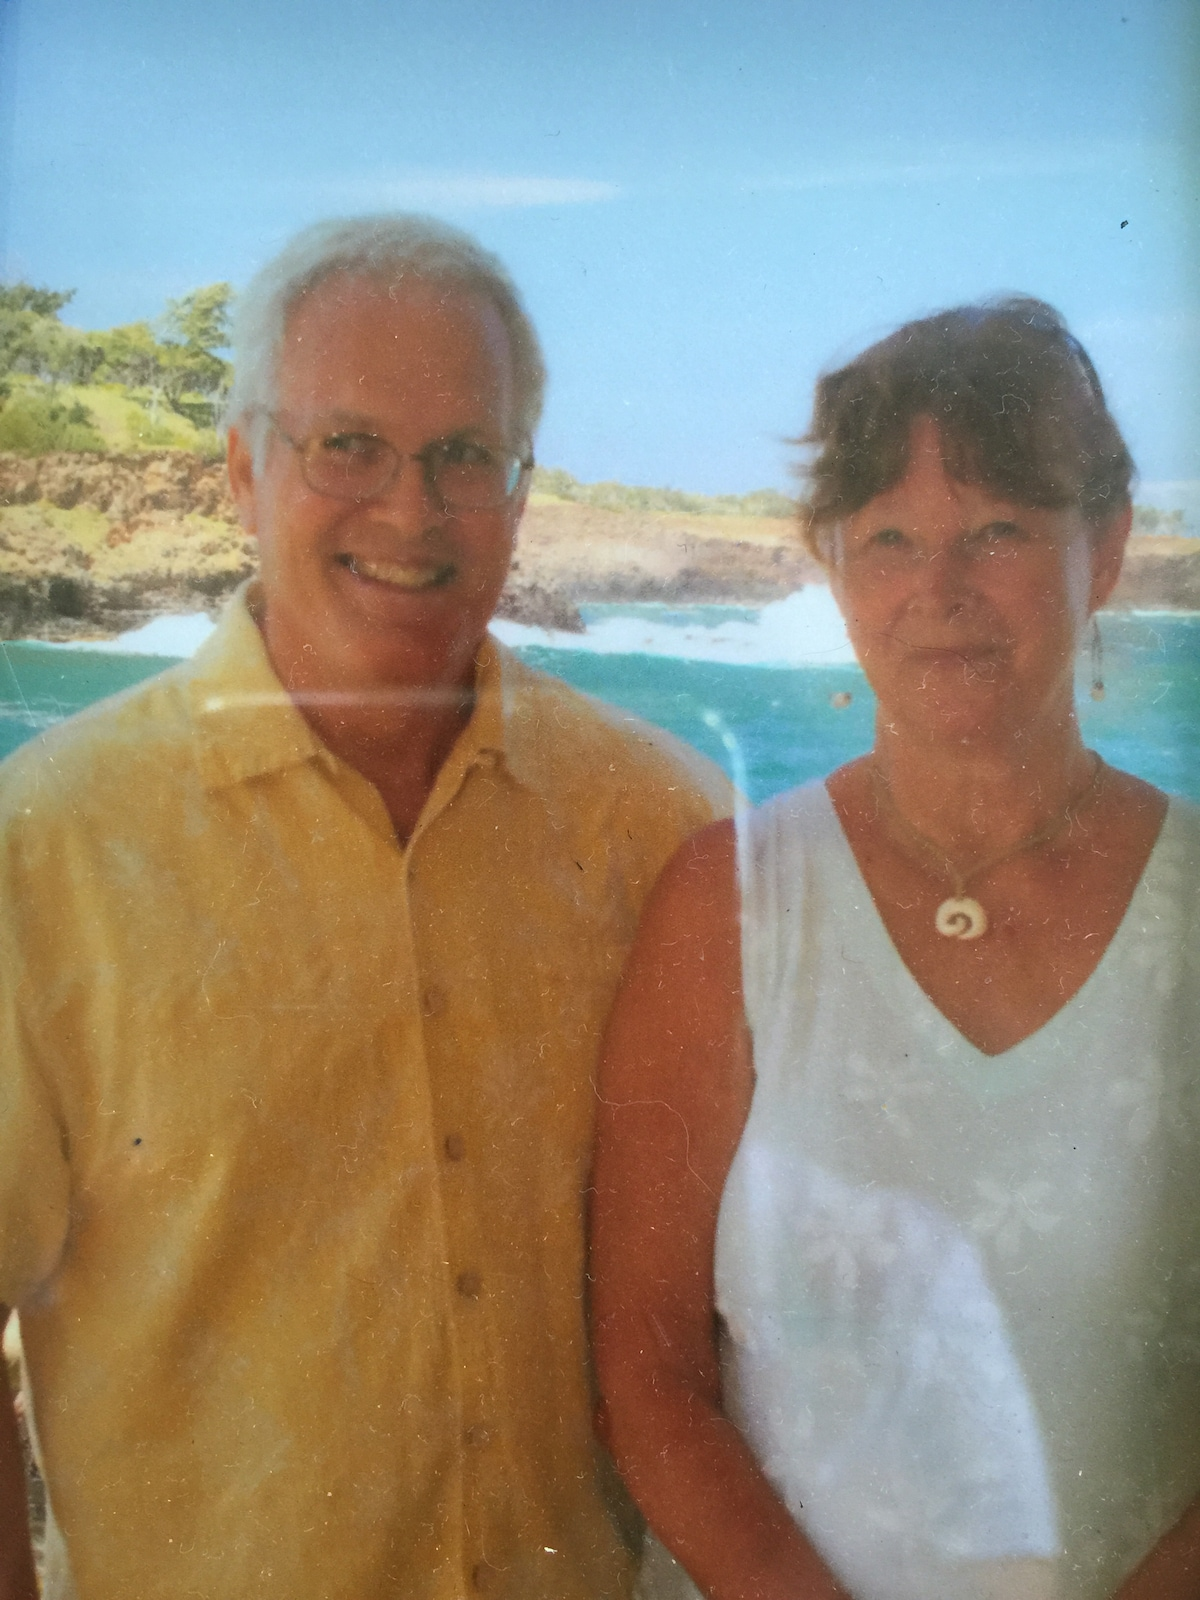 Bruce and Fern have lived on the Hilo side of the